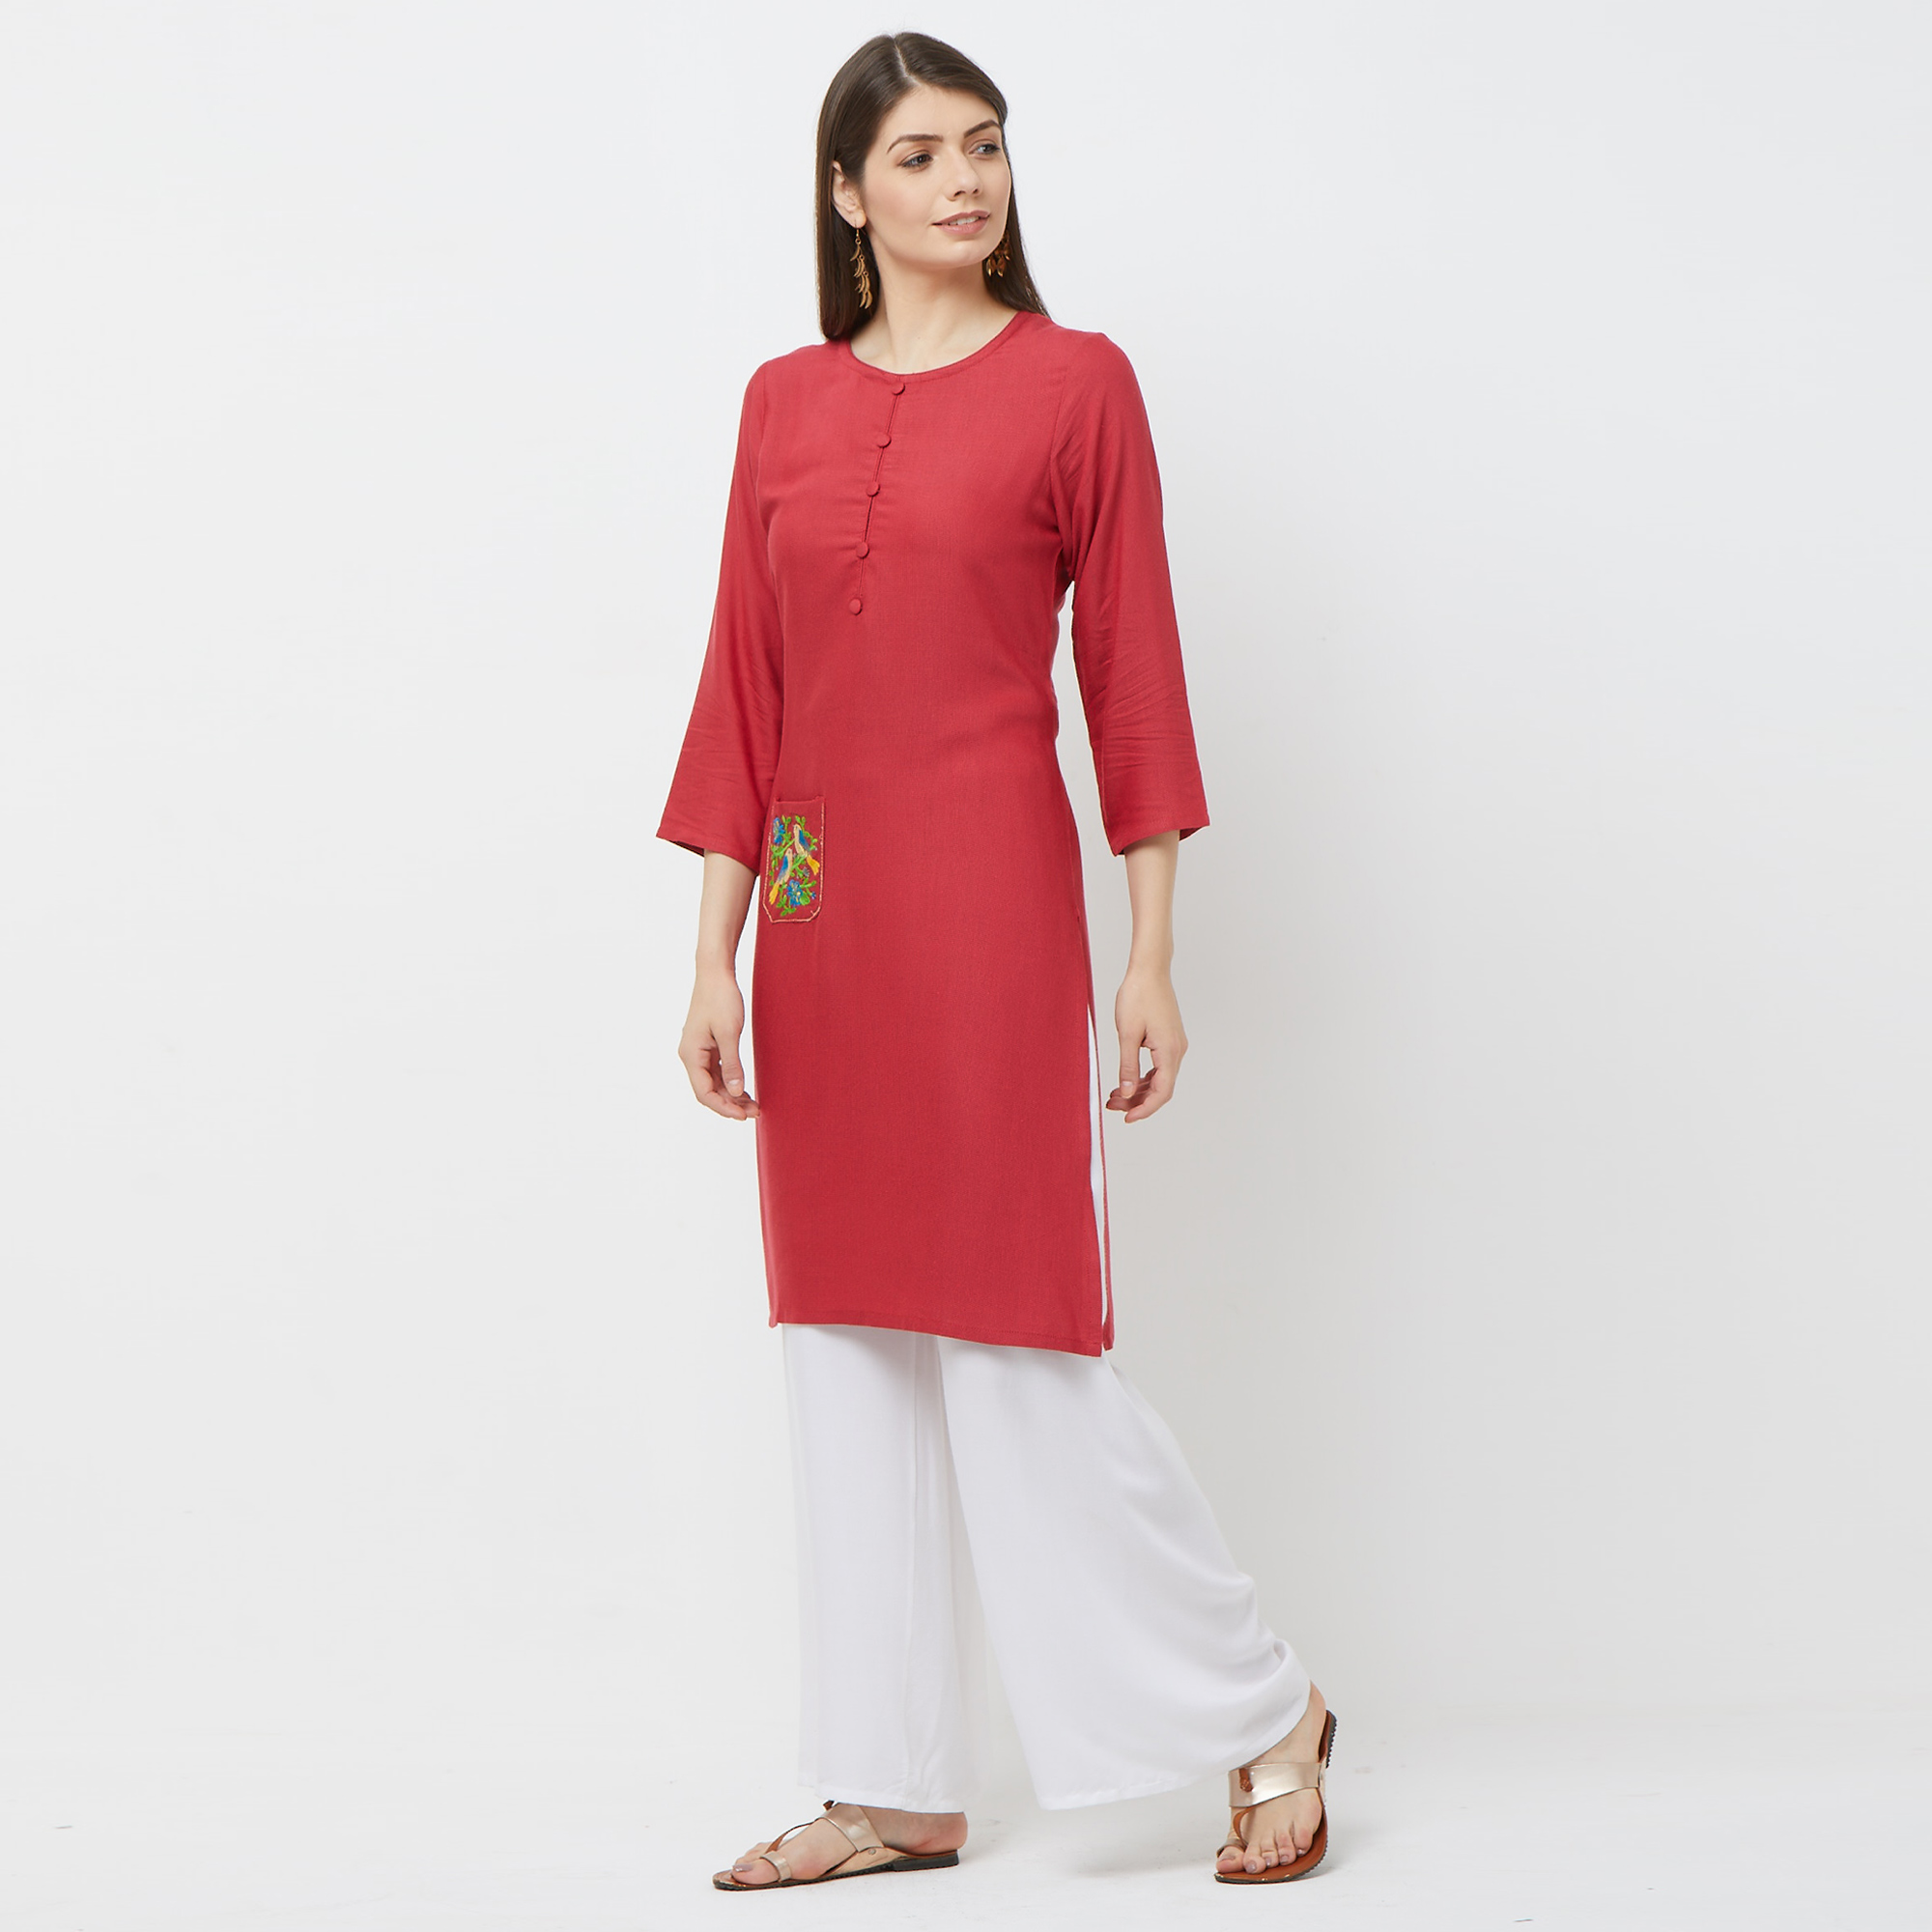 Appealing Pink Colored Casual Embroidered Cotton Kurti